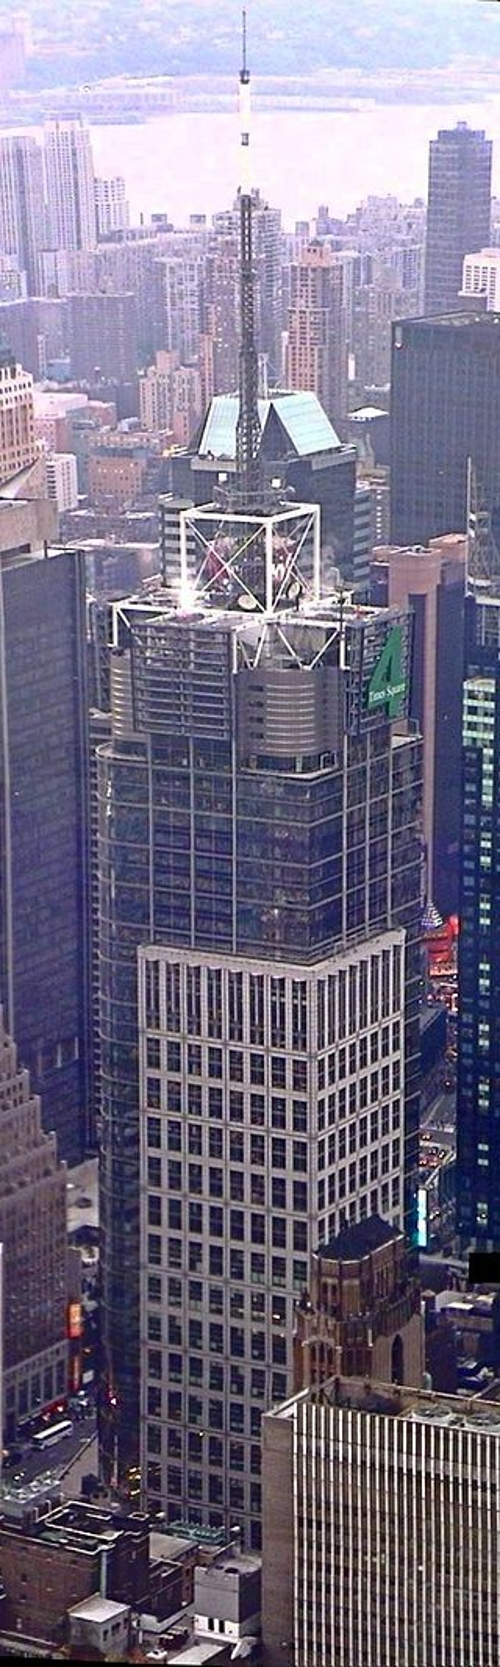 Condé Nast Building New York City, New York in Southpaw